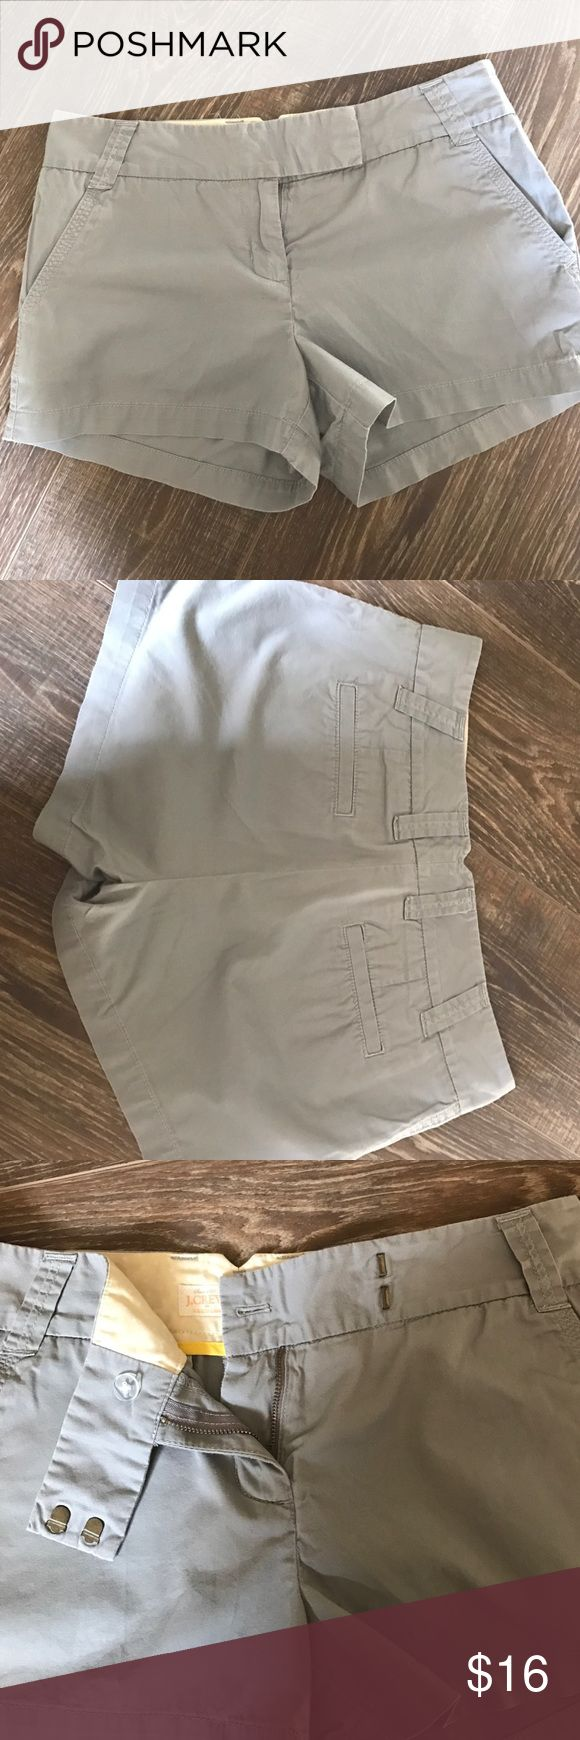 J.Crew gray shorts J.Crew gray shorts in great condition. Button and hook closure. Worn a handful of times. J. Crew Shorts